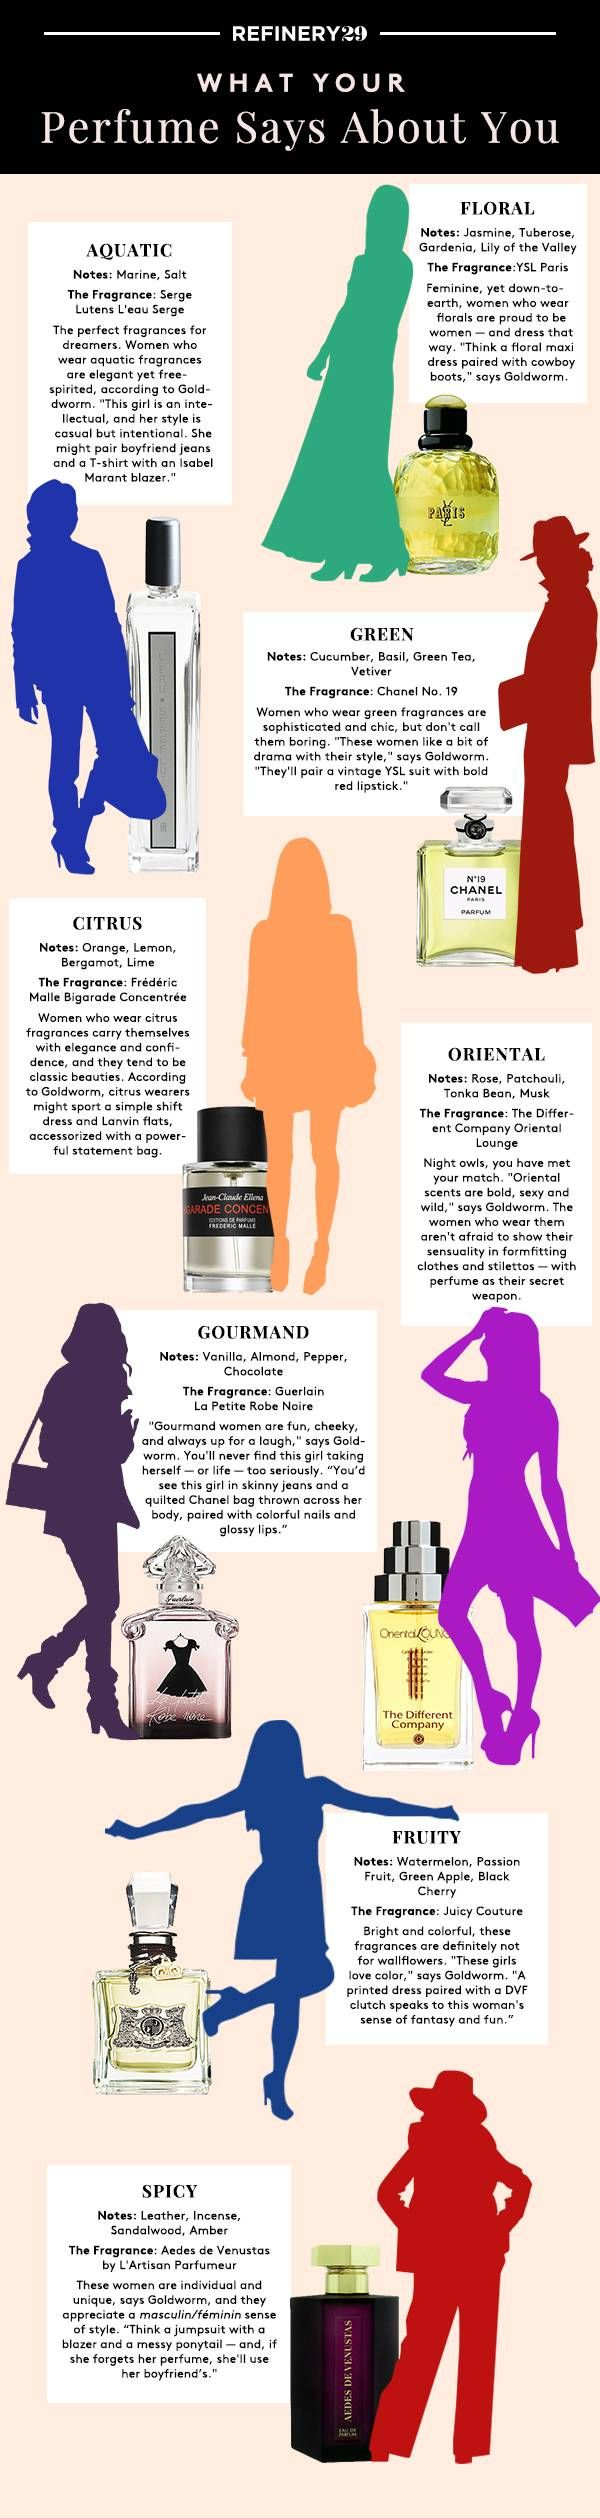 28 Best Perfumes Images On Pinterest Paco Rabanne 1 Million Man Fdt 100ml I Am A Gourmand Scent Study What Your Perfume Says About You Im At Least 3 Of These But Bergamot Is My Favorite Note It